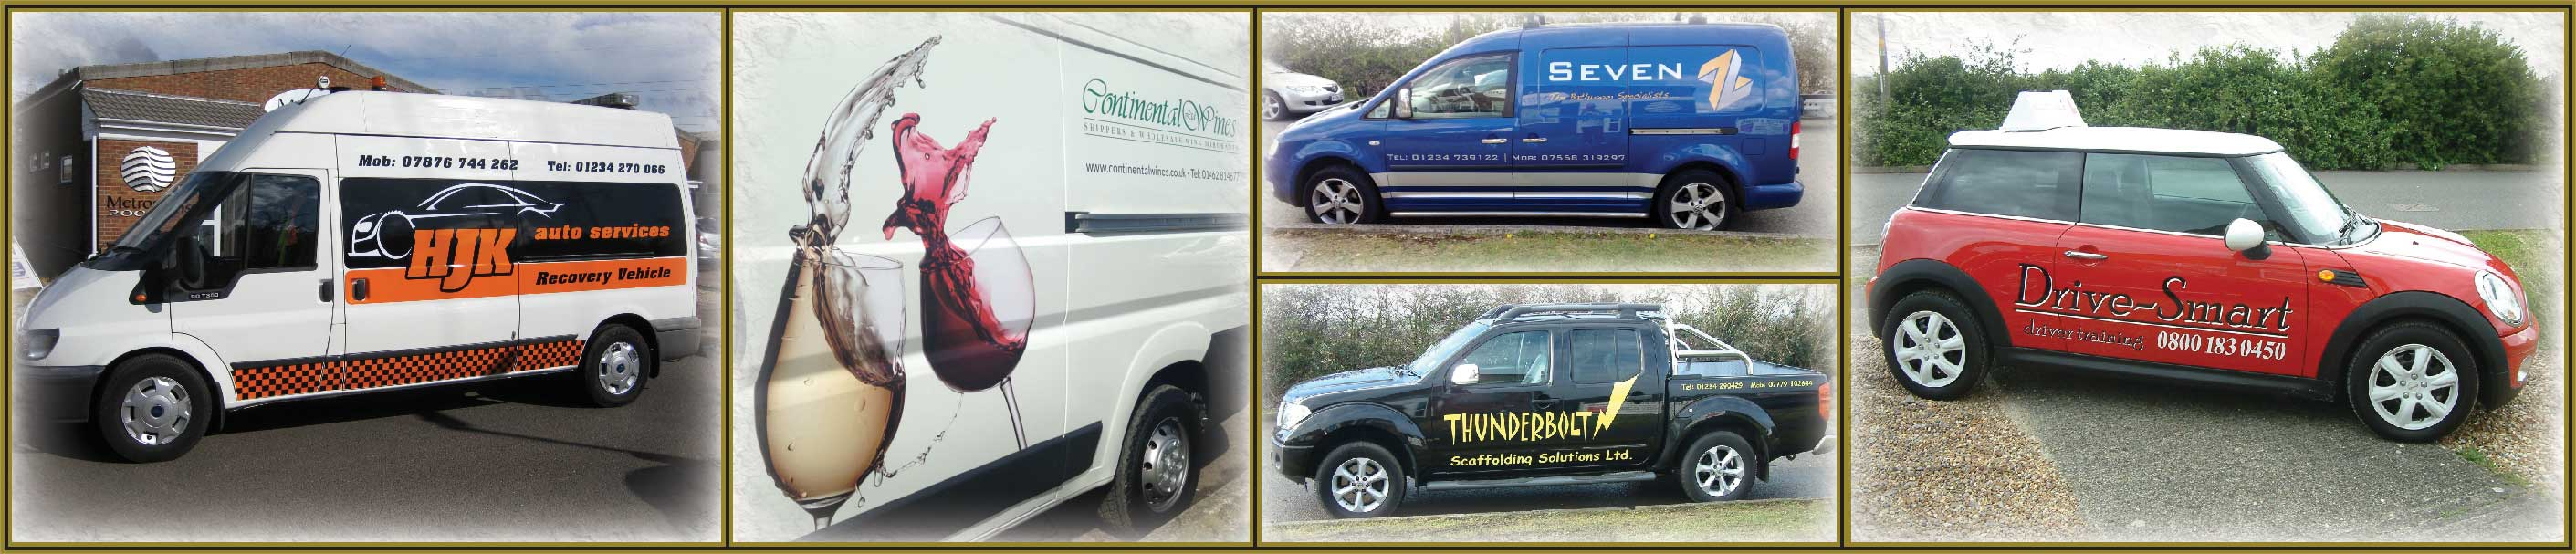 vehicle-livery-graphics-and-wraps